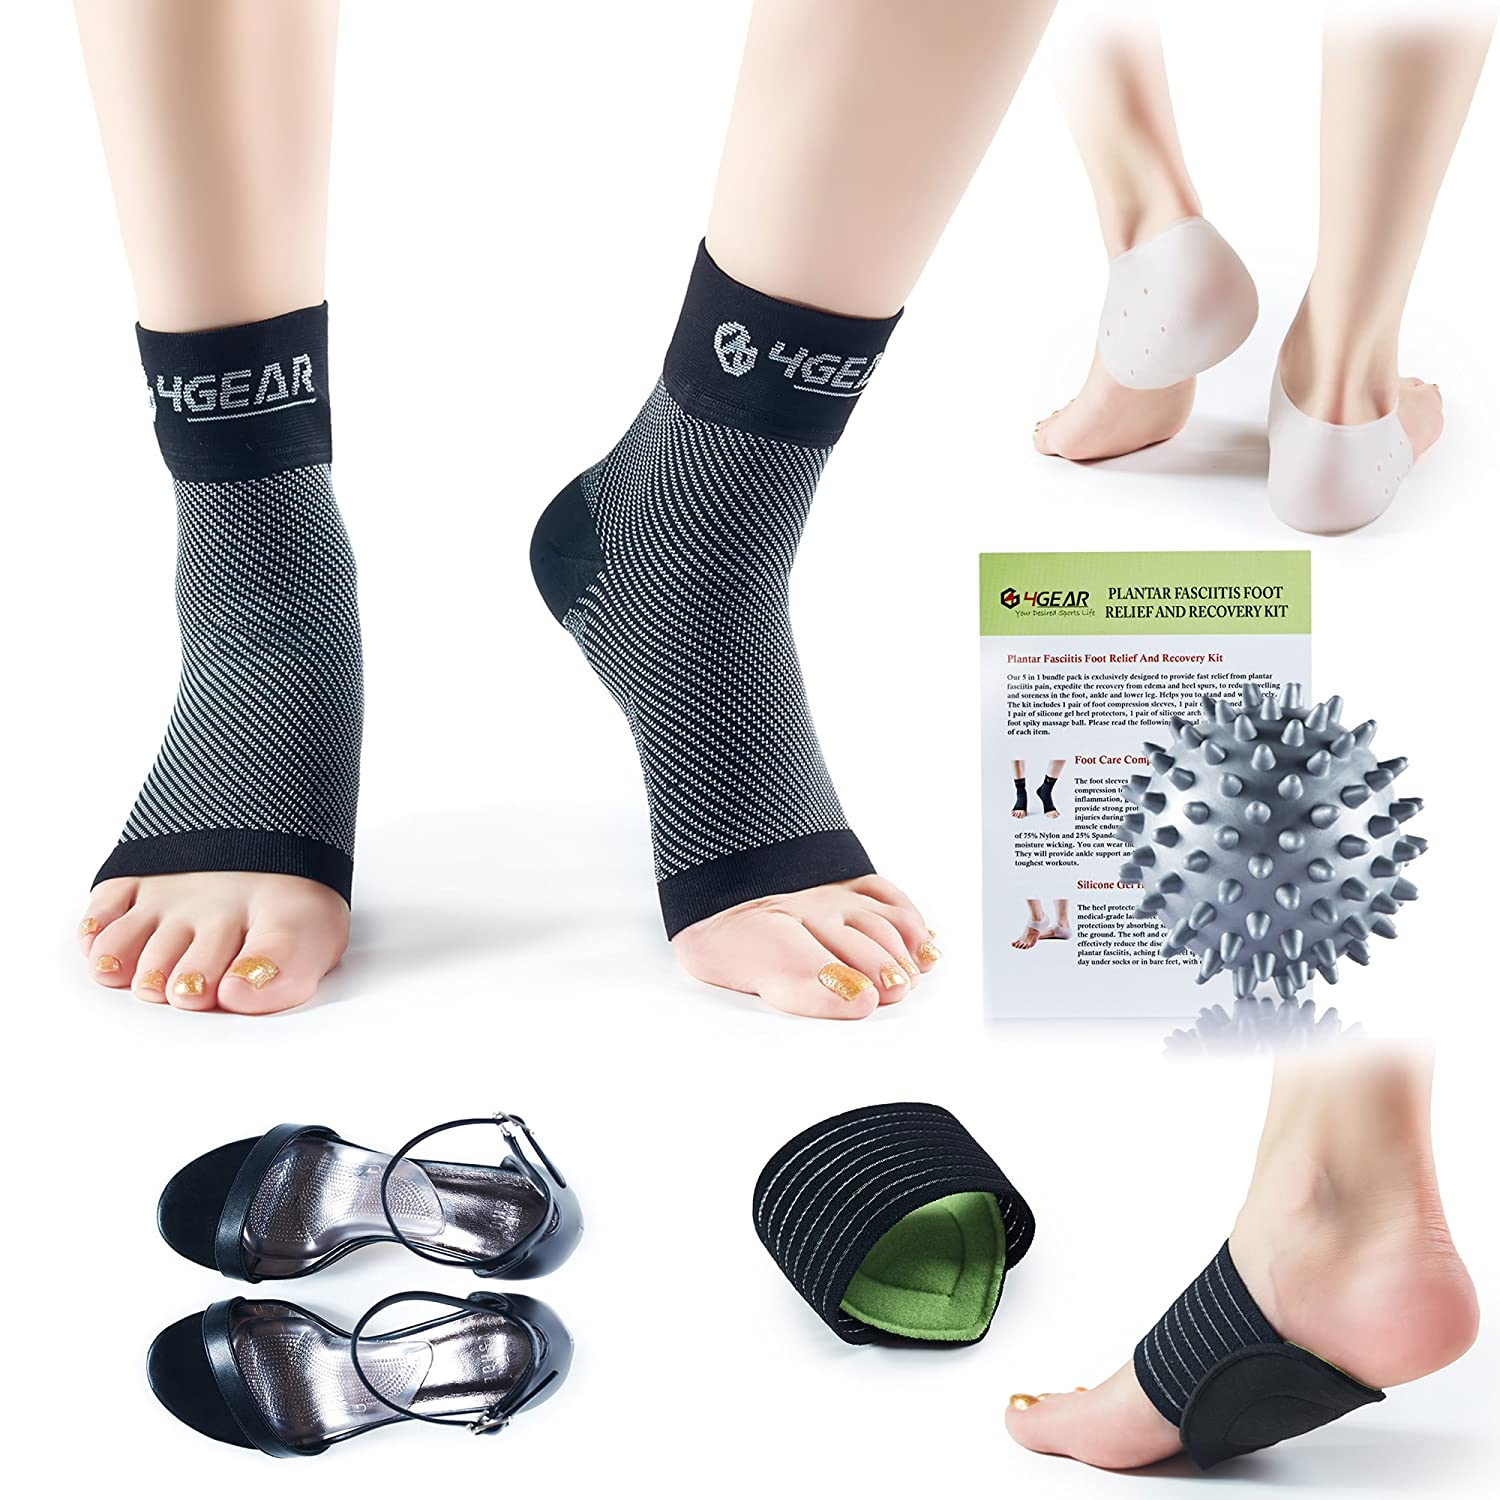 c70bea39d039 Plantar Fasciitis Relief   Recovery Kit - 9 Pieces - Foot Care Compression  Sleeves